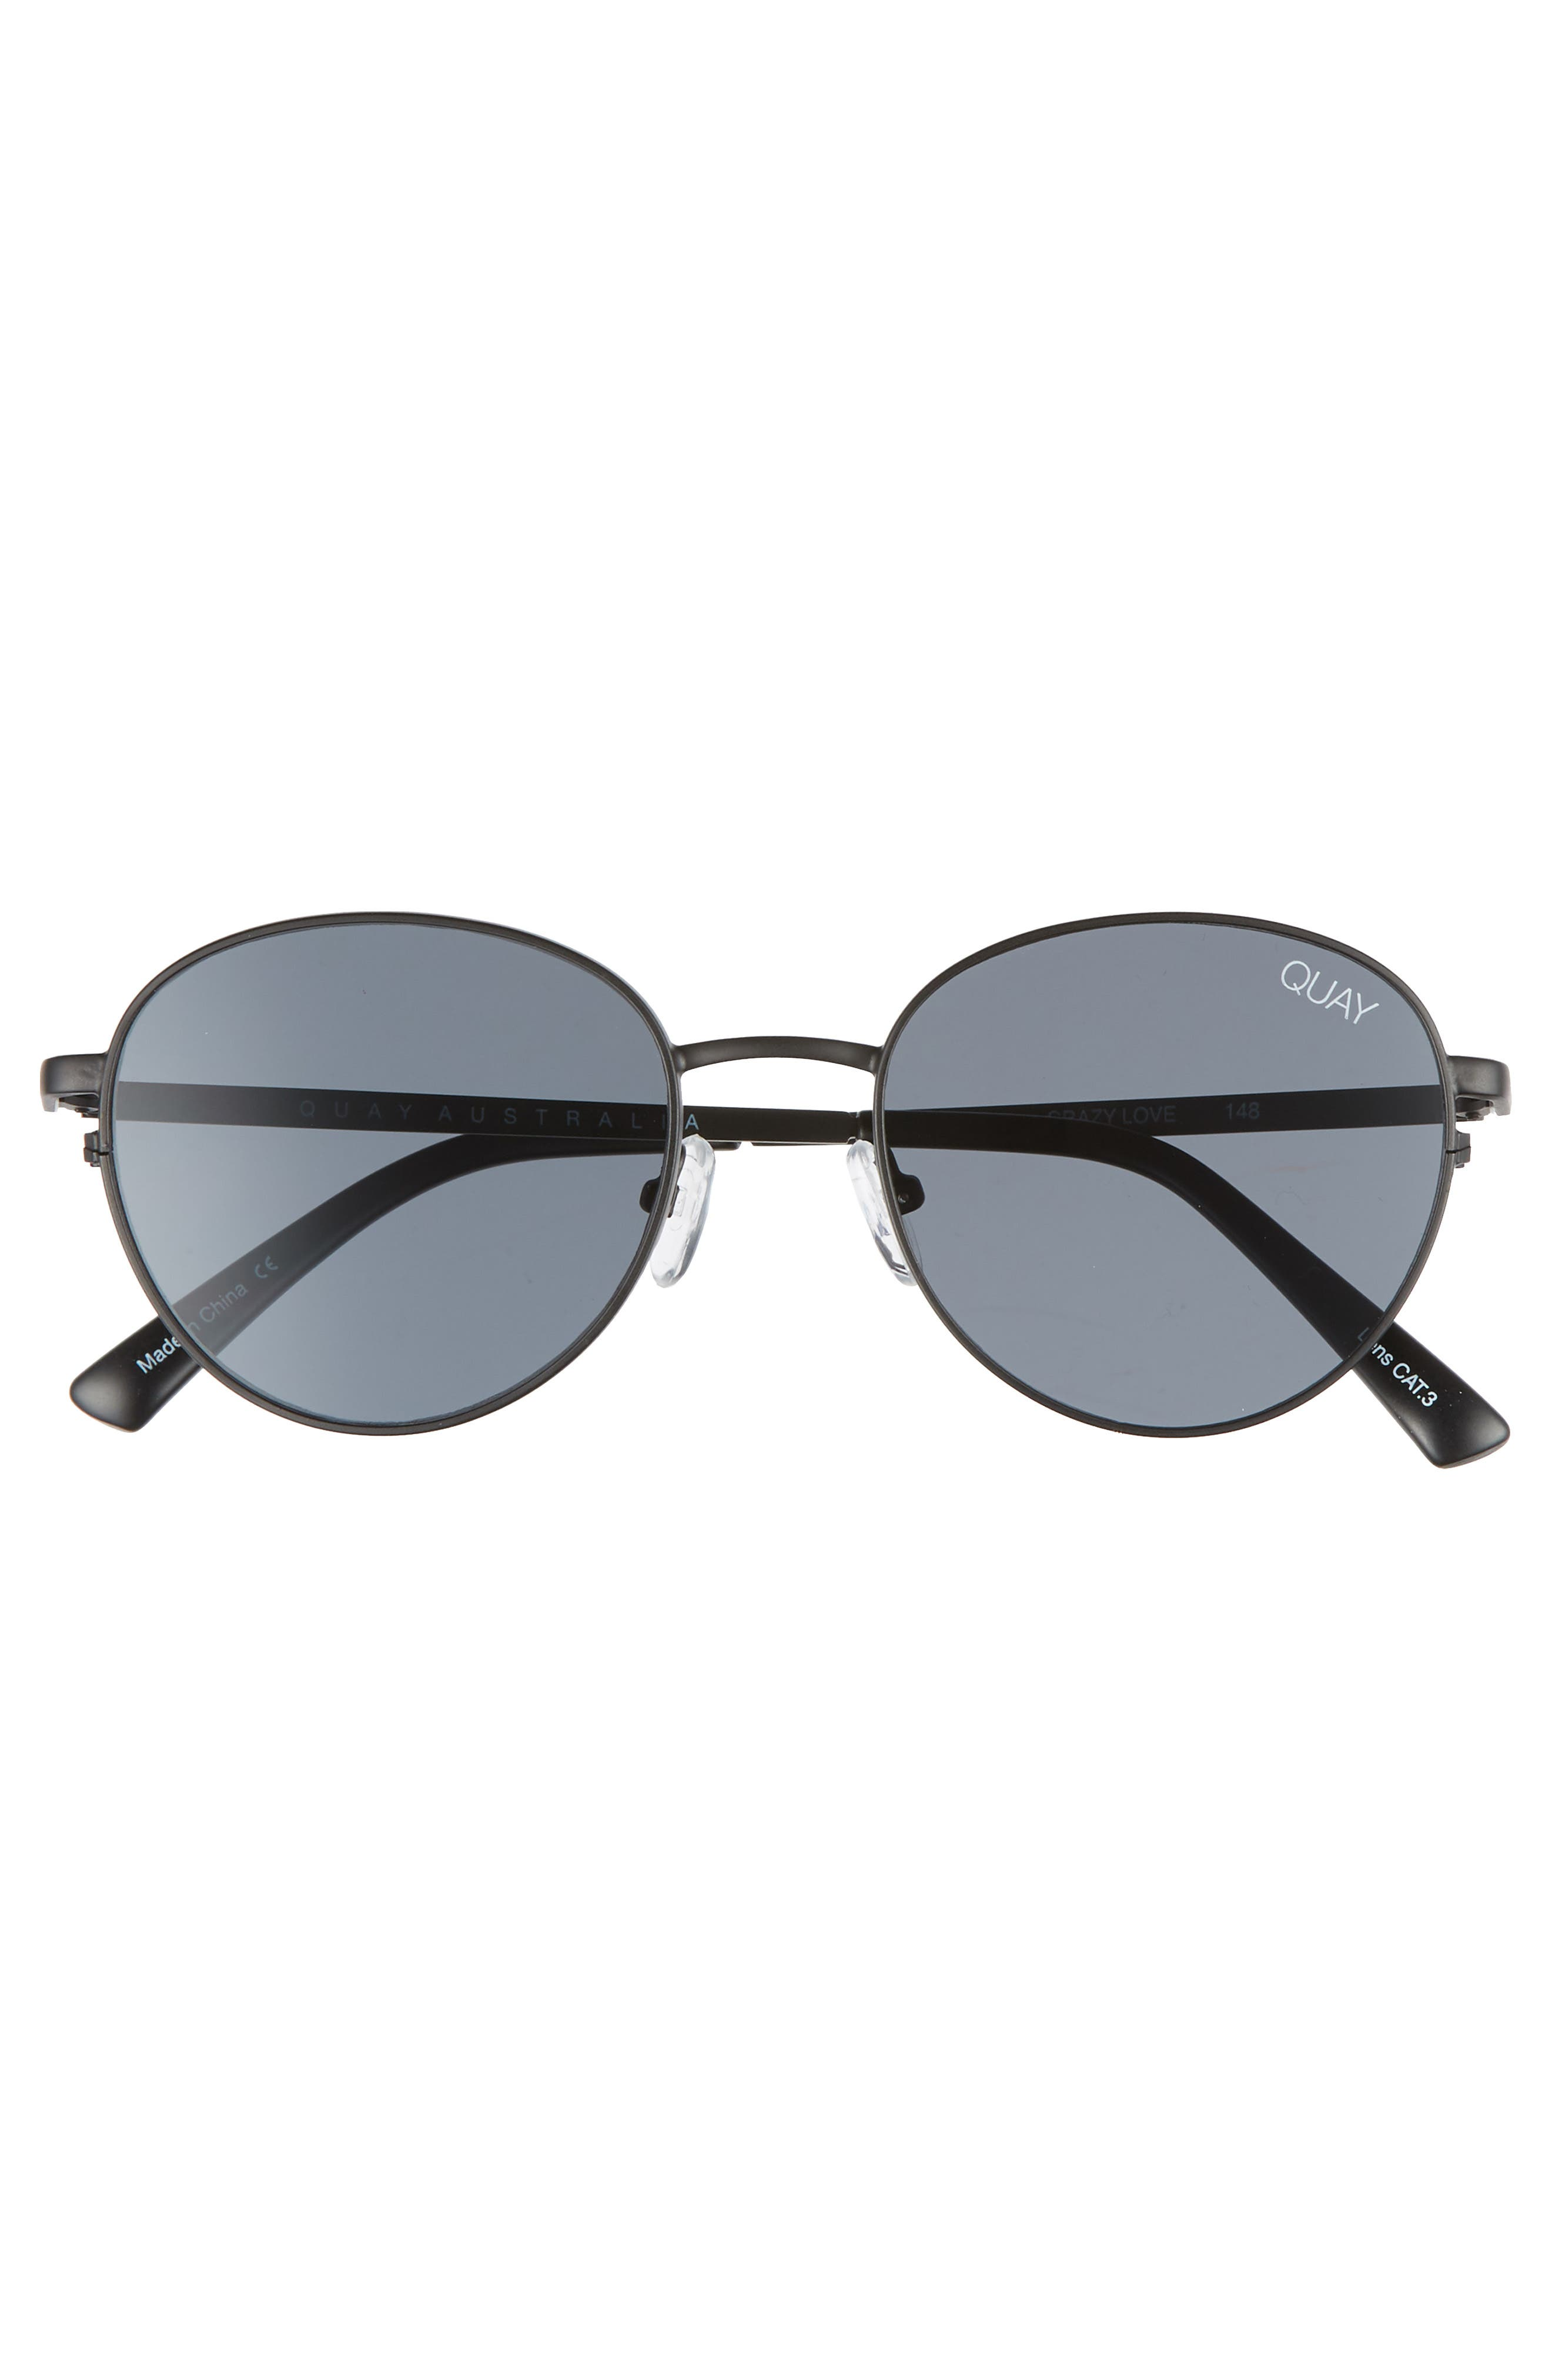 Crazy Love 45mm Round Sunglasses,                             Alternate thumbnail 3, color,                             BLACK/ SMOKE